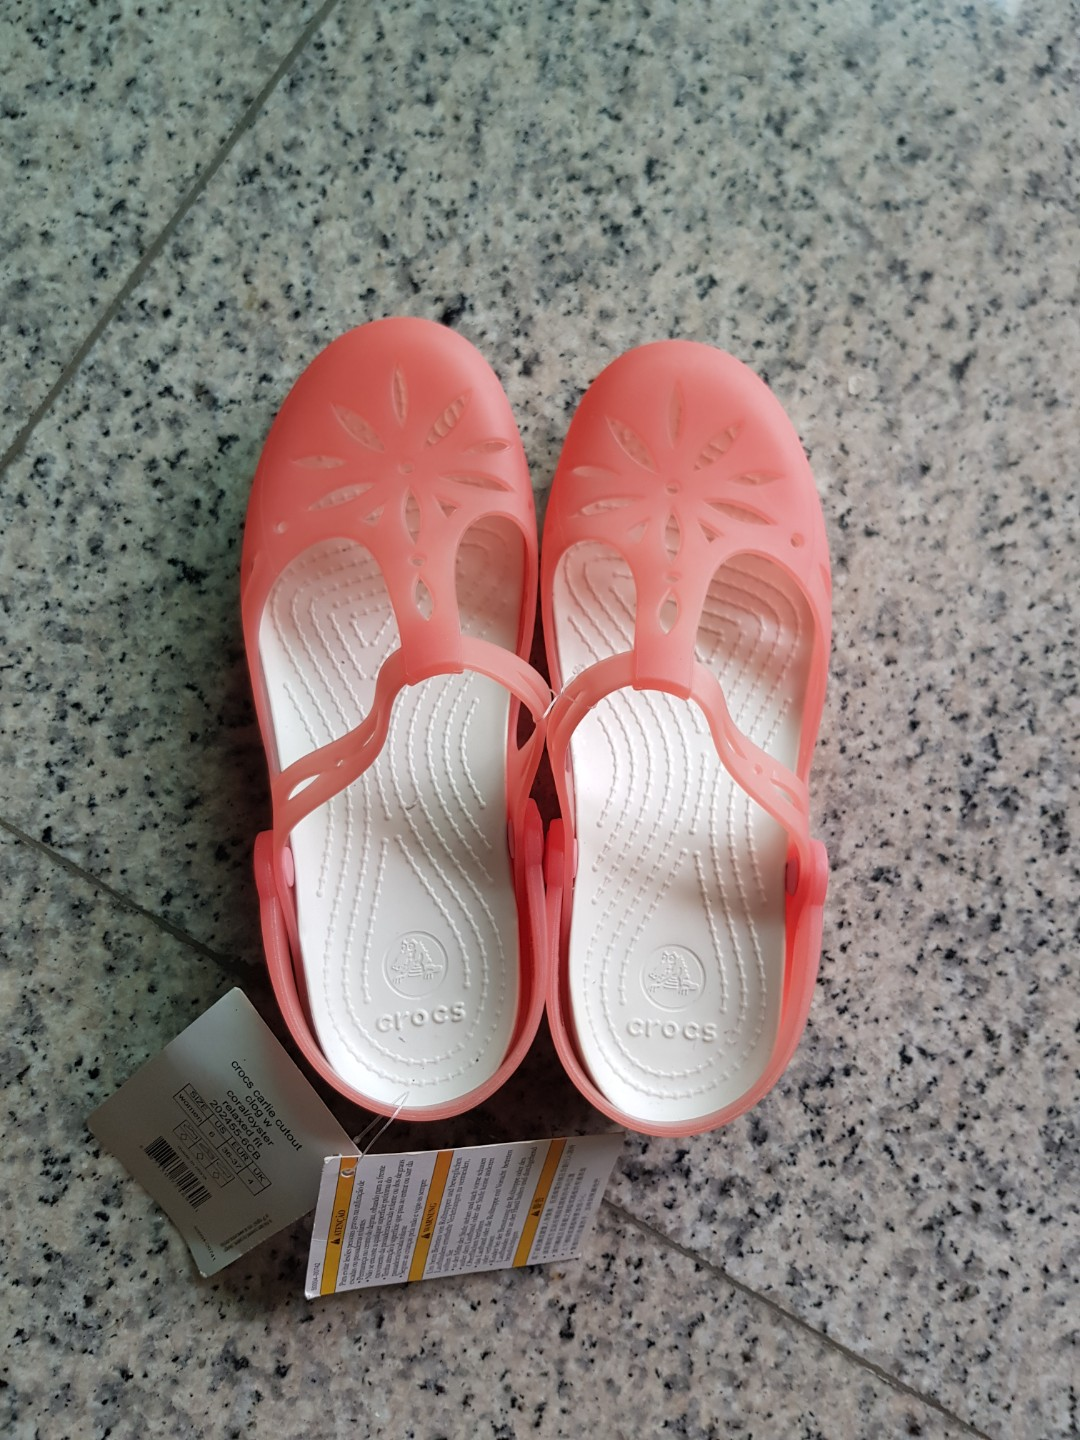 5a33701b01e60 Crocs Carlie Cutout clog with relax fit Size W6